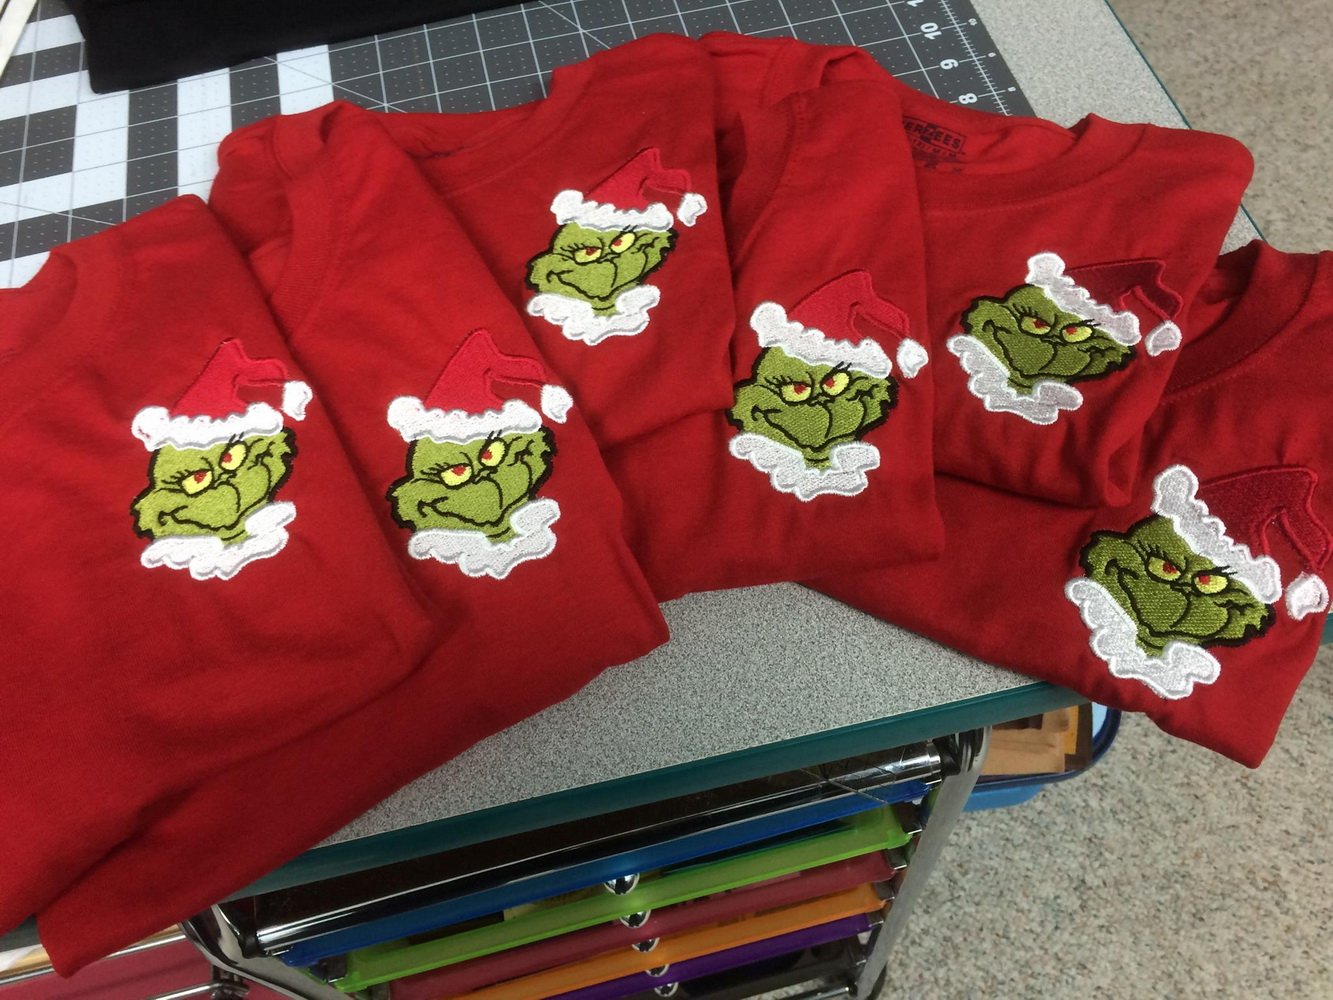 Grinch design on t-shirt embroidered